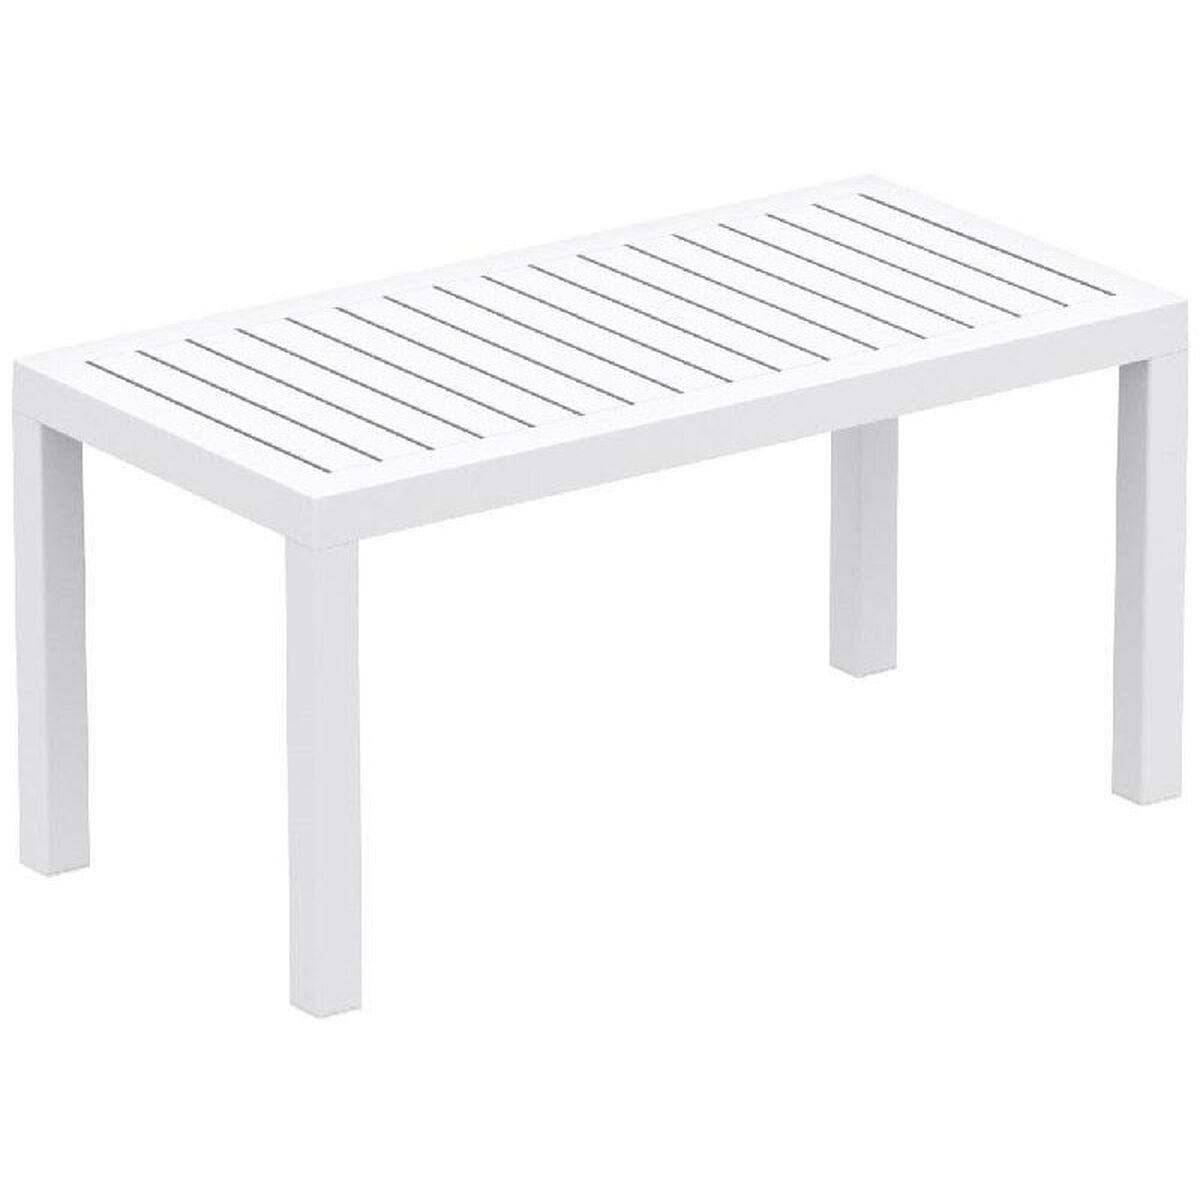 Our Ocean Outdoor Resin Rectangle Coffee Table White Is On Now